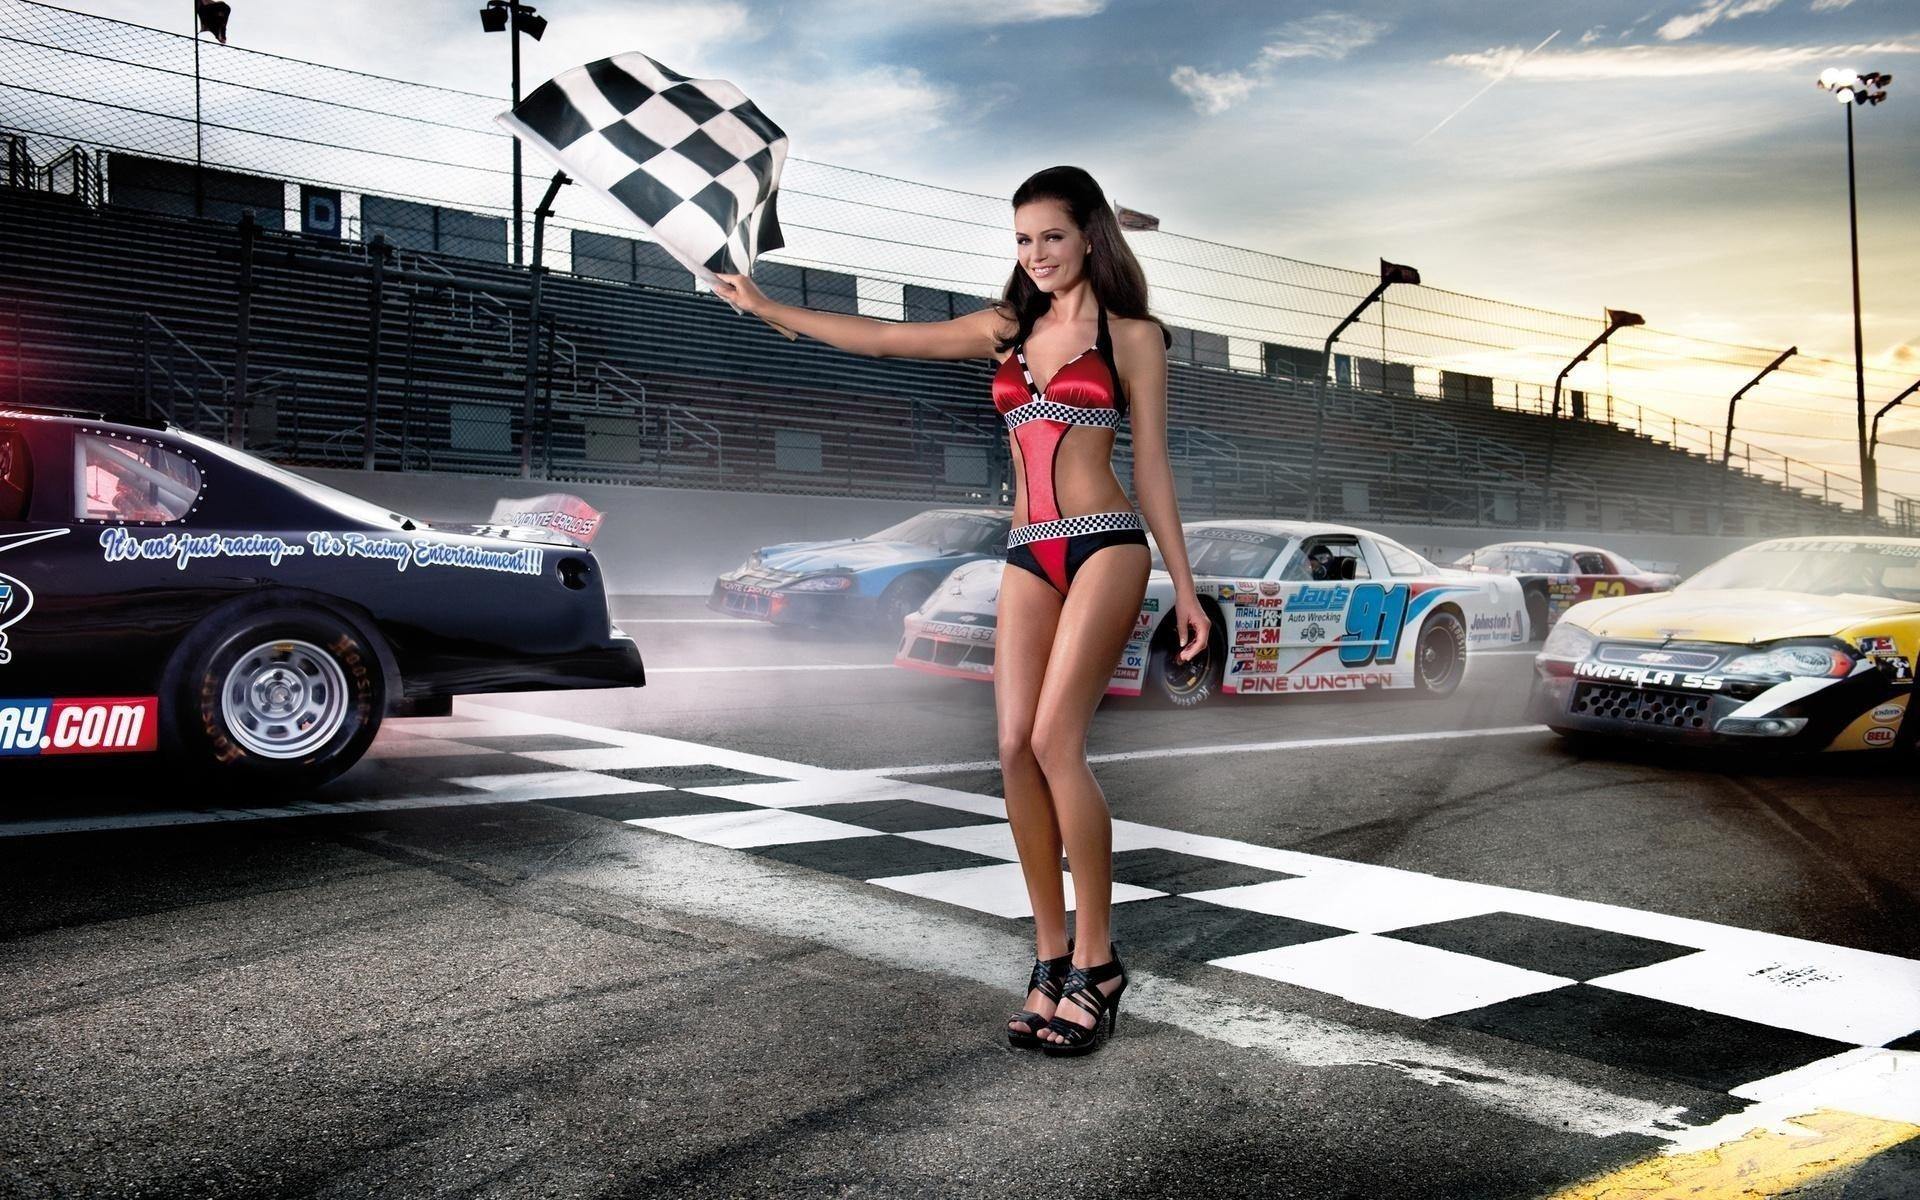 grid girls hd wallpapers - photo #15